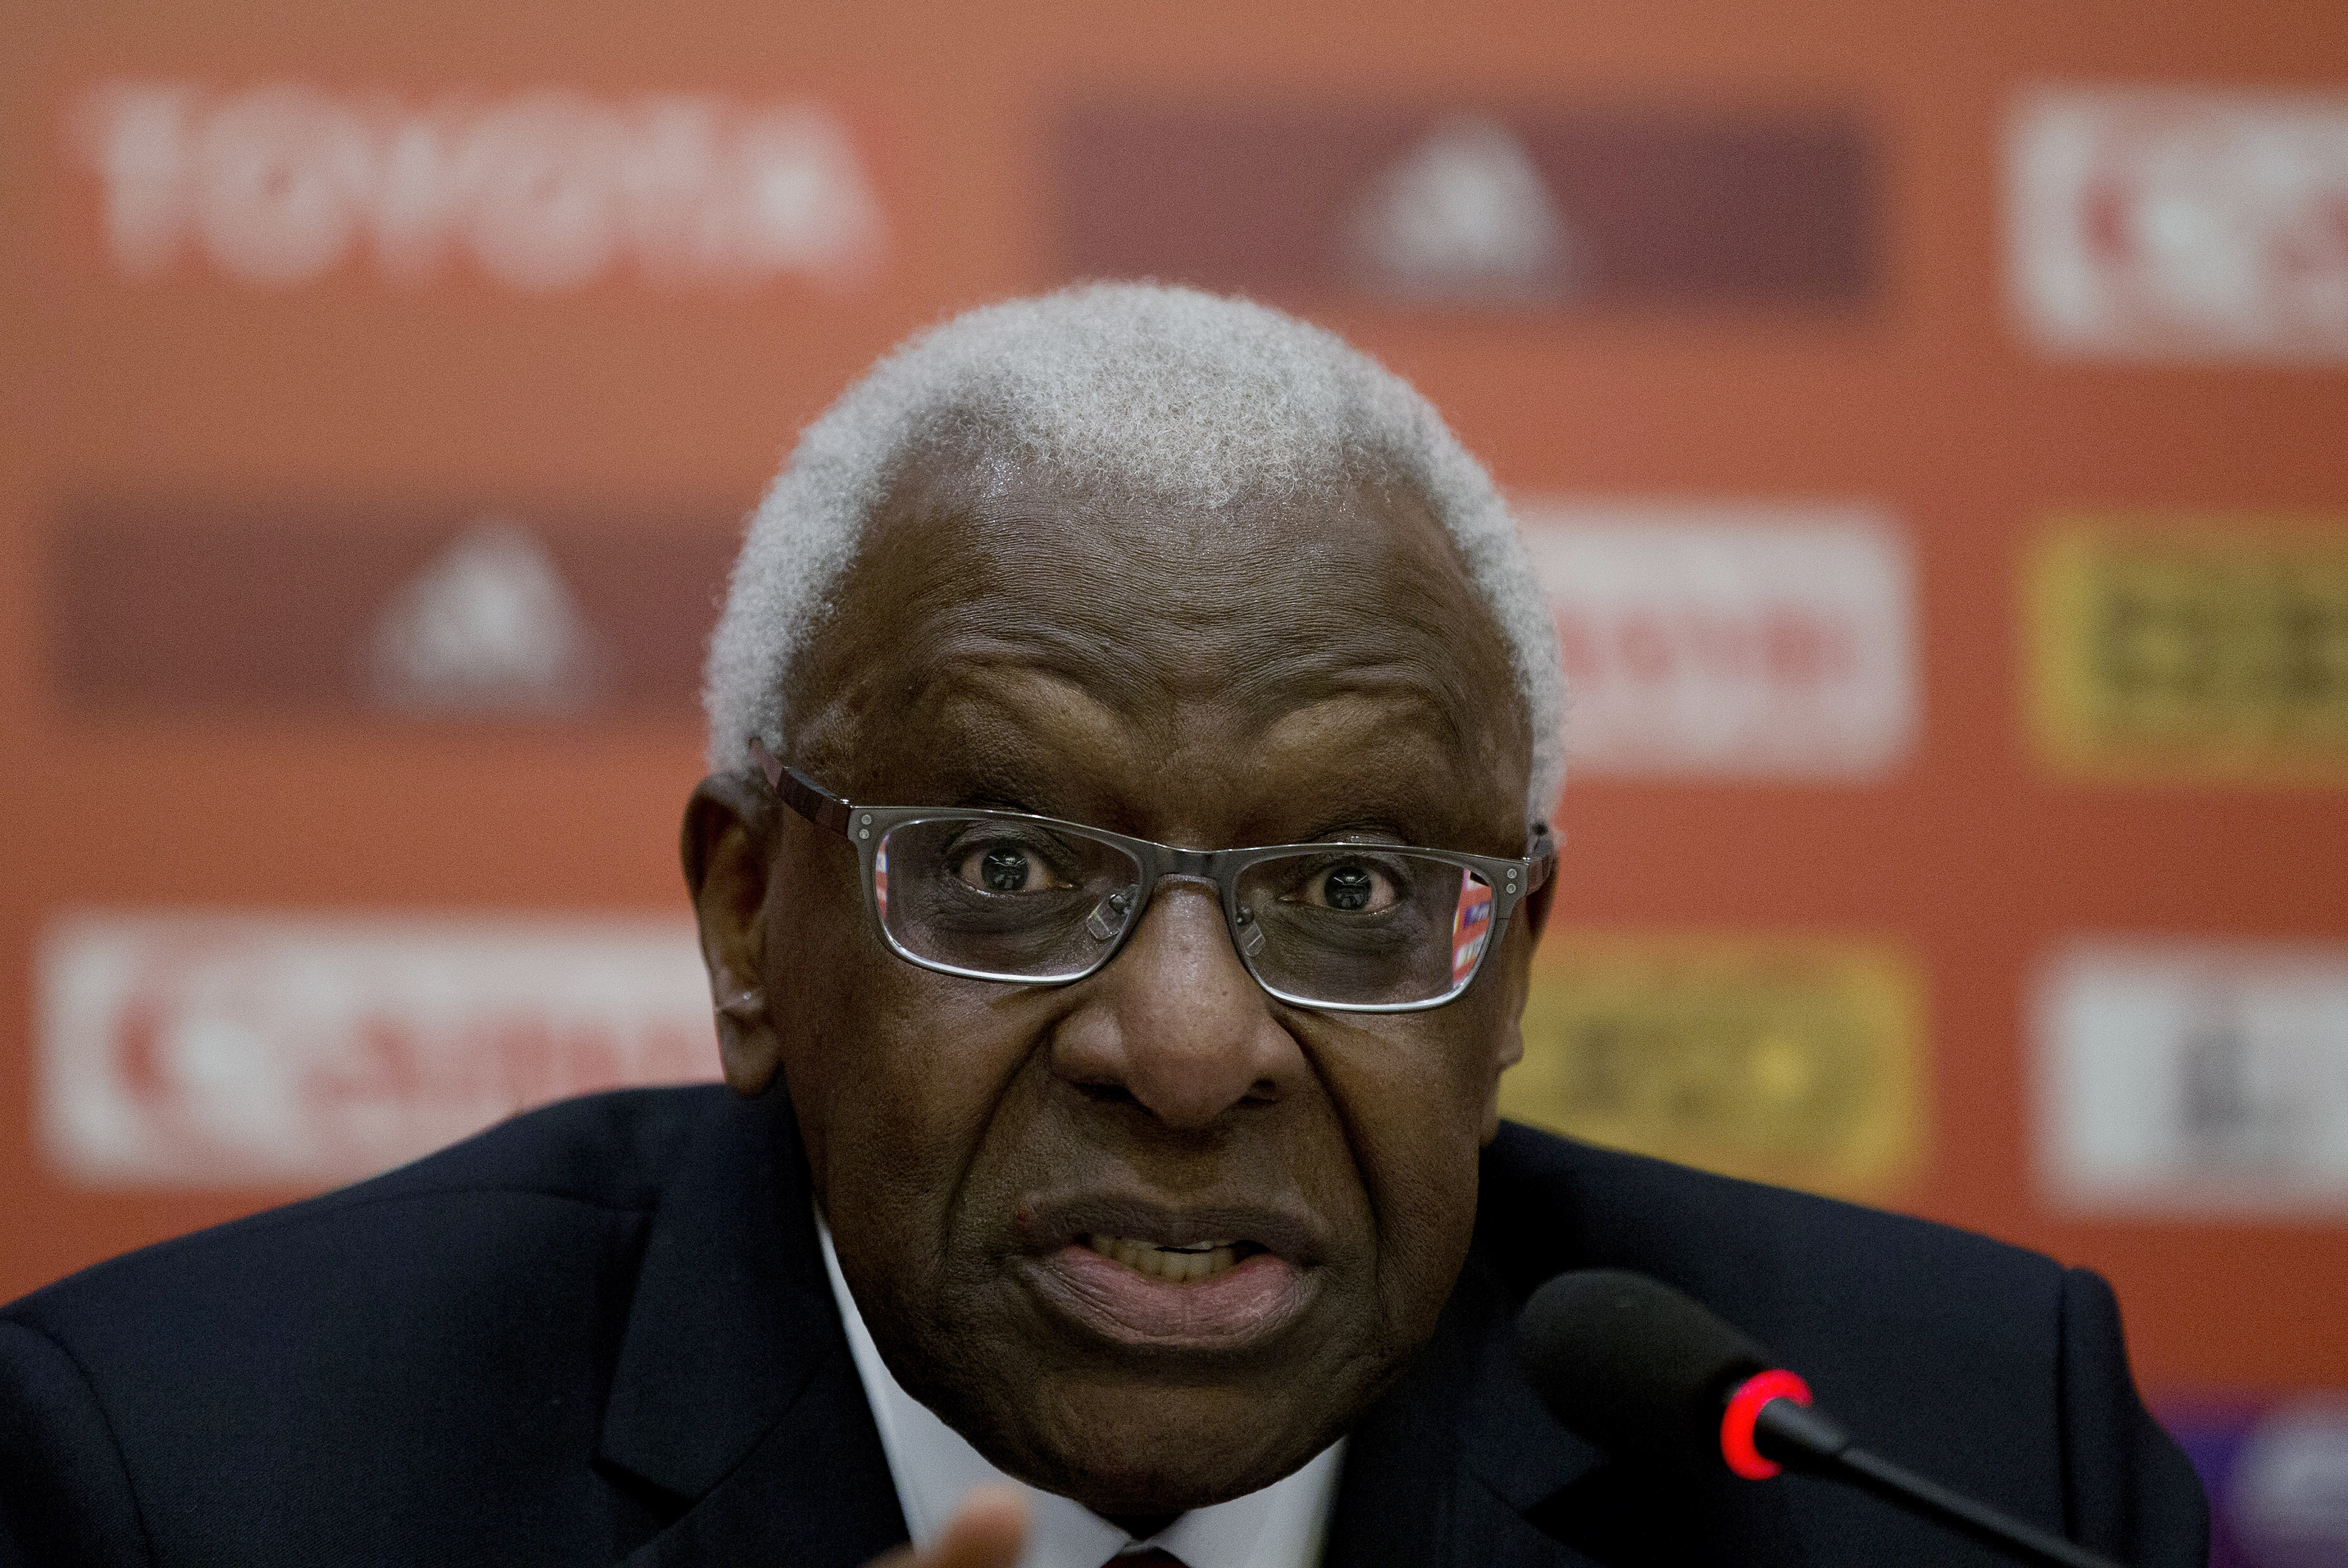 President of the International Association of Athletics Federations Lamine Diack speaks during the press conference at the IAAF Congress at the National Convention Center in Beijing, Aug. 20, 2015.